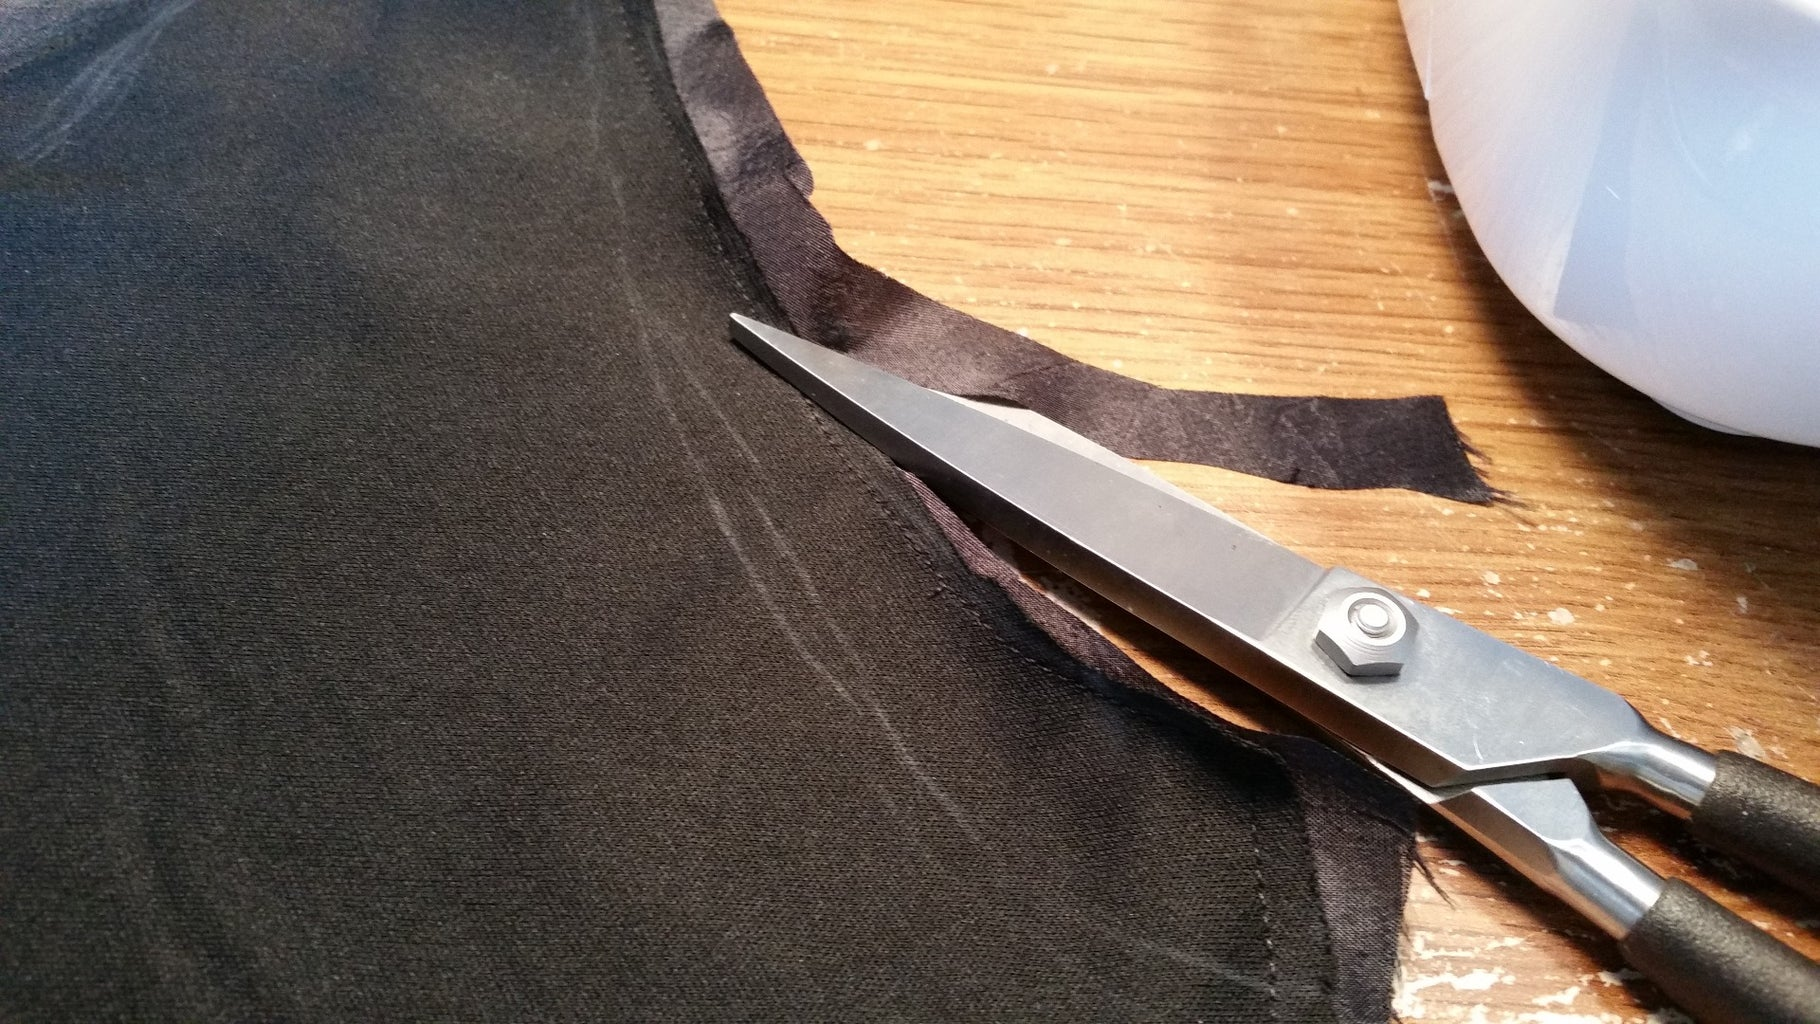 Sew the Liner Planes to the Outer Planes